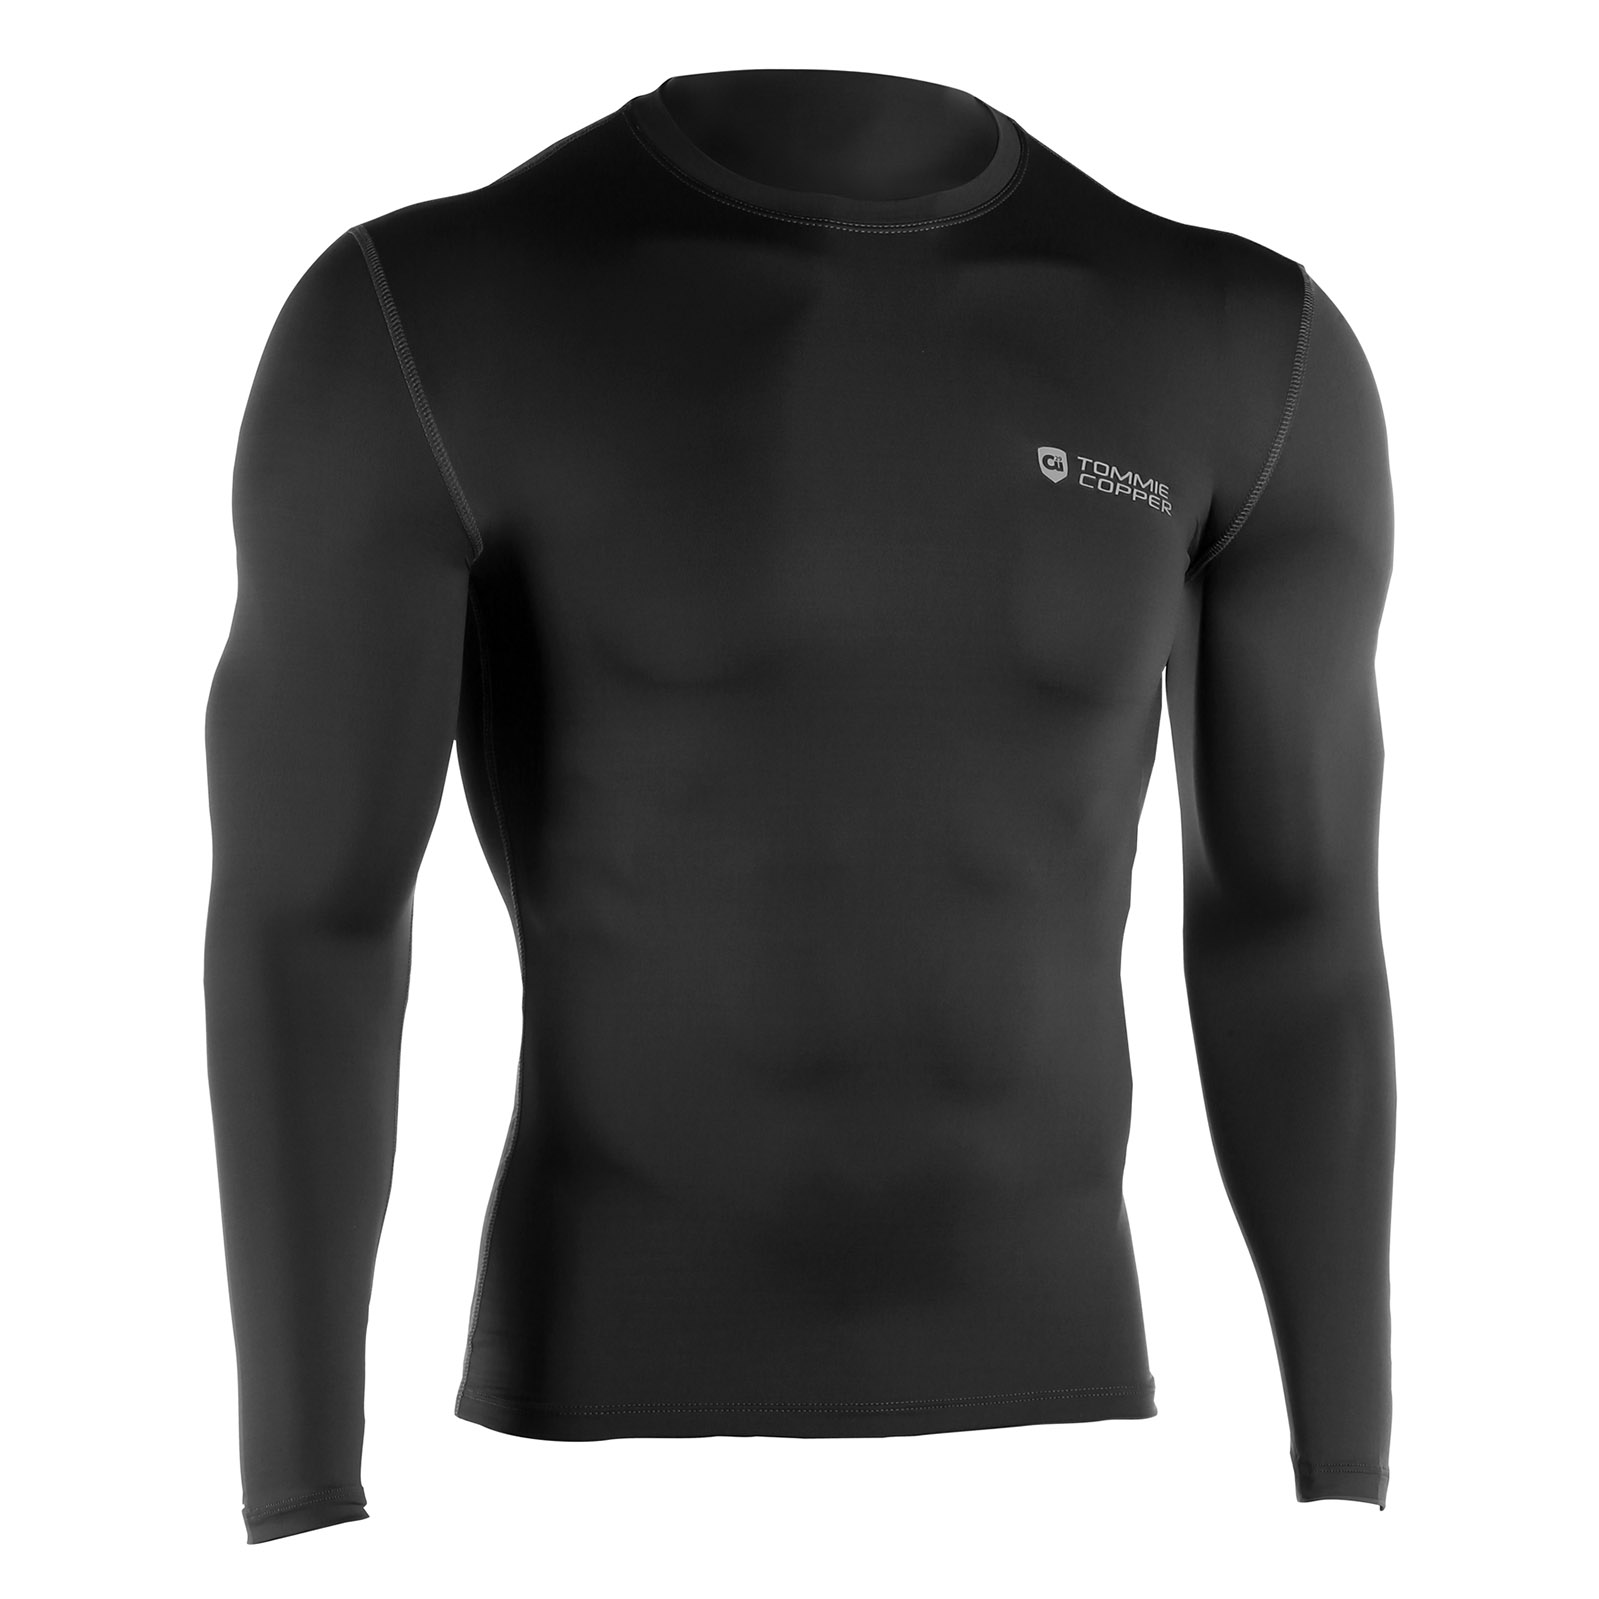 Tommie Copper Mens Long Sleeve Compression Shirt Non Reim